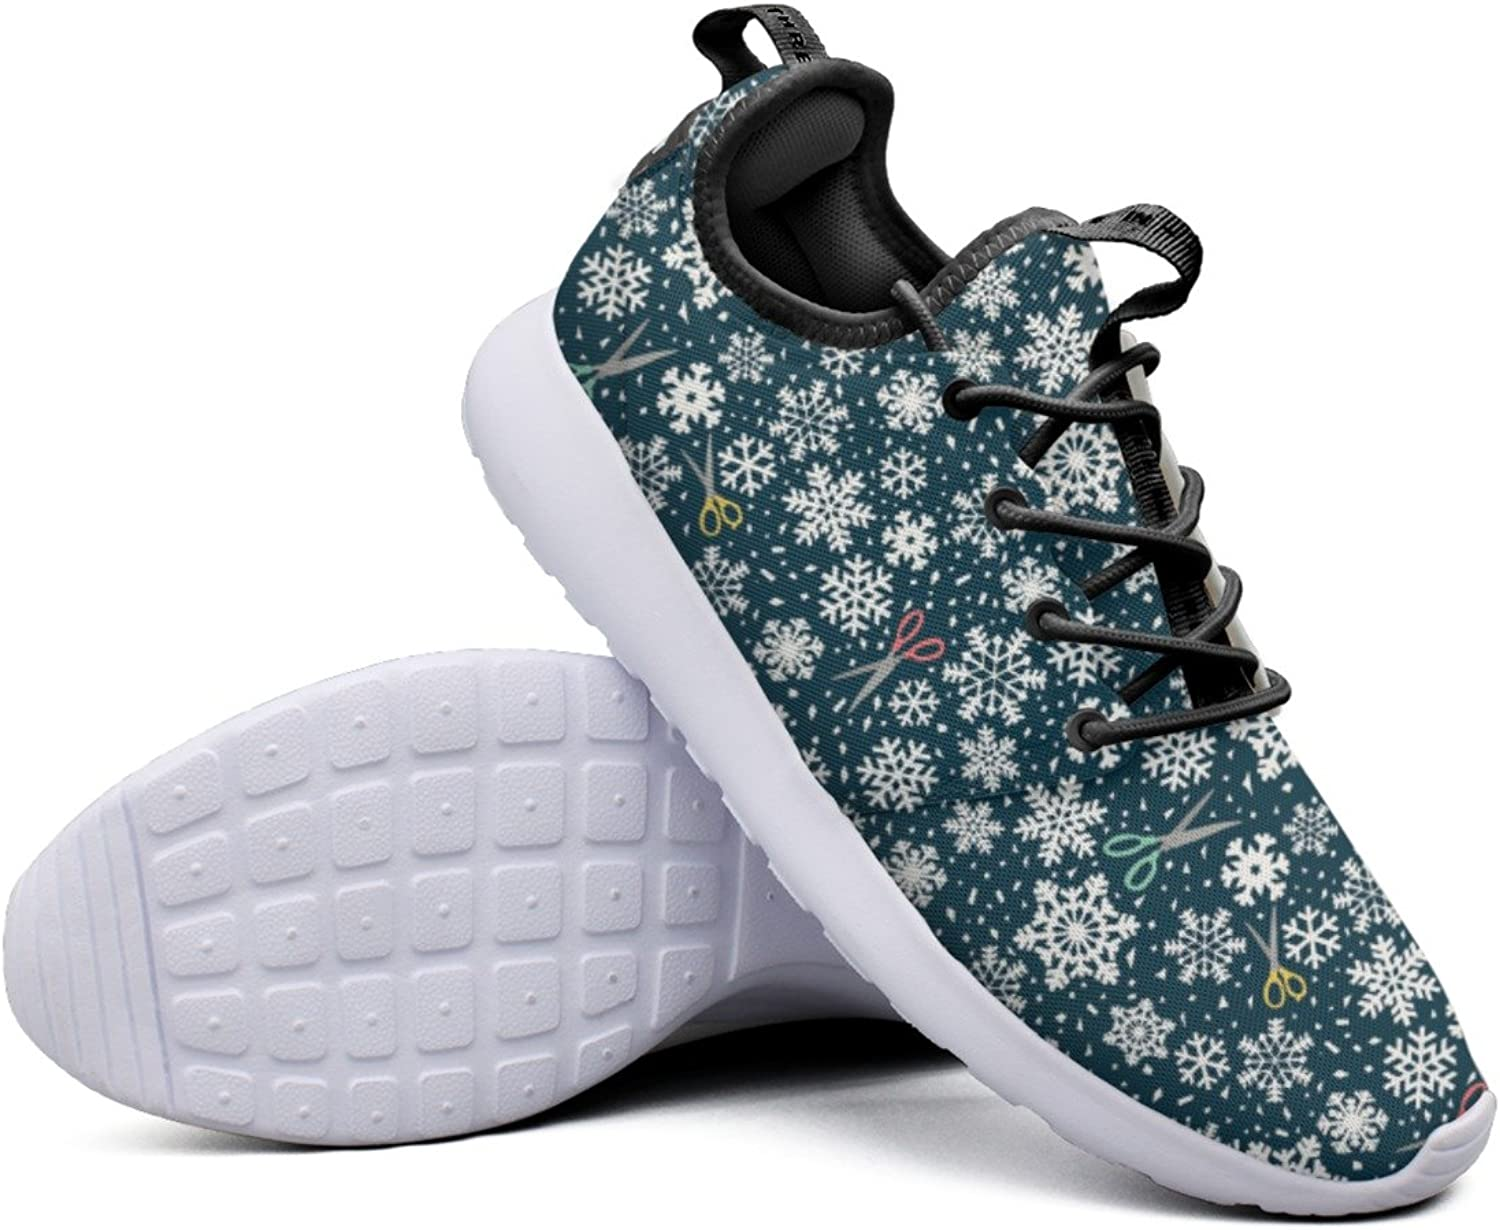 Fashion Sneakers shoes For Women Winter Paper Snowflakes Original Lightweight Breathable Mesh Womens Basketball Sneakers